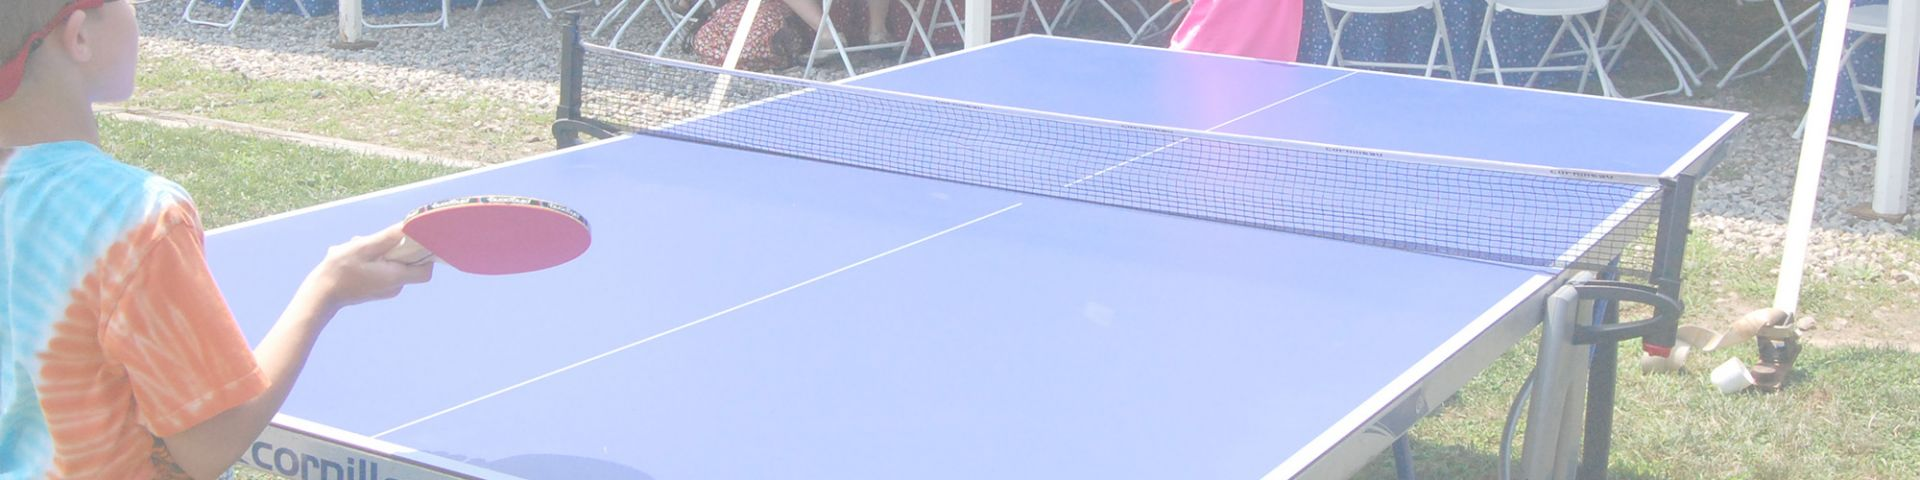 Giant ping pong table